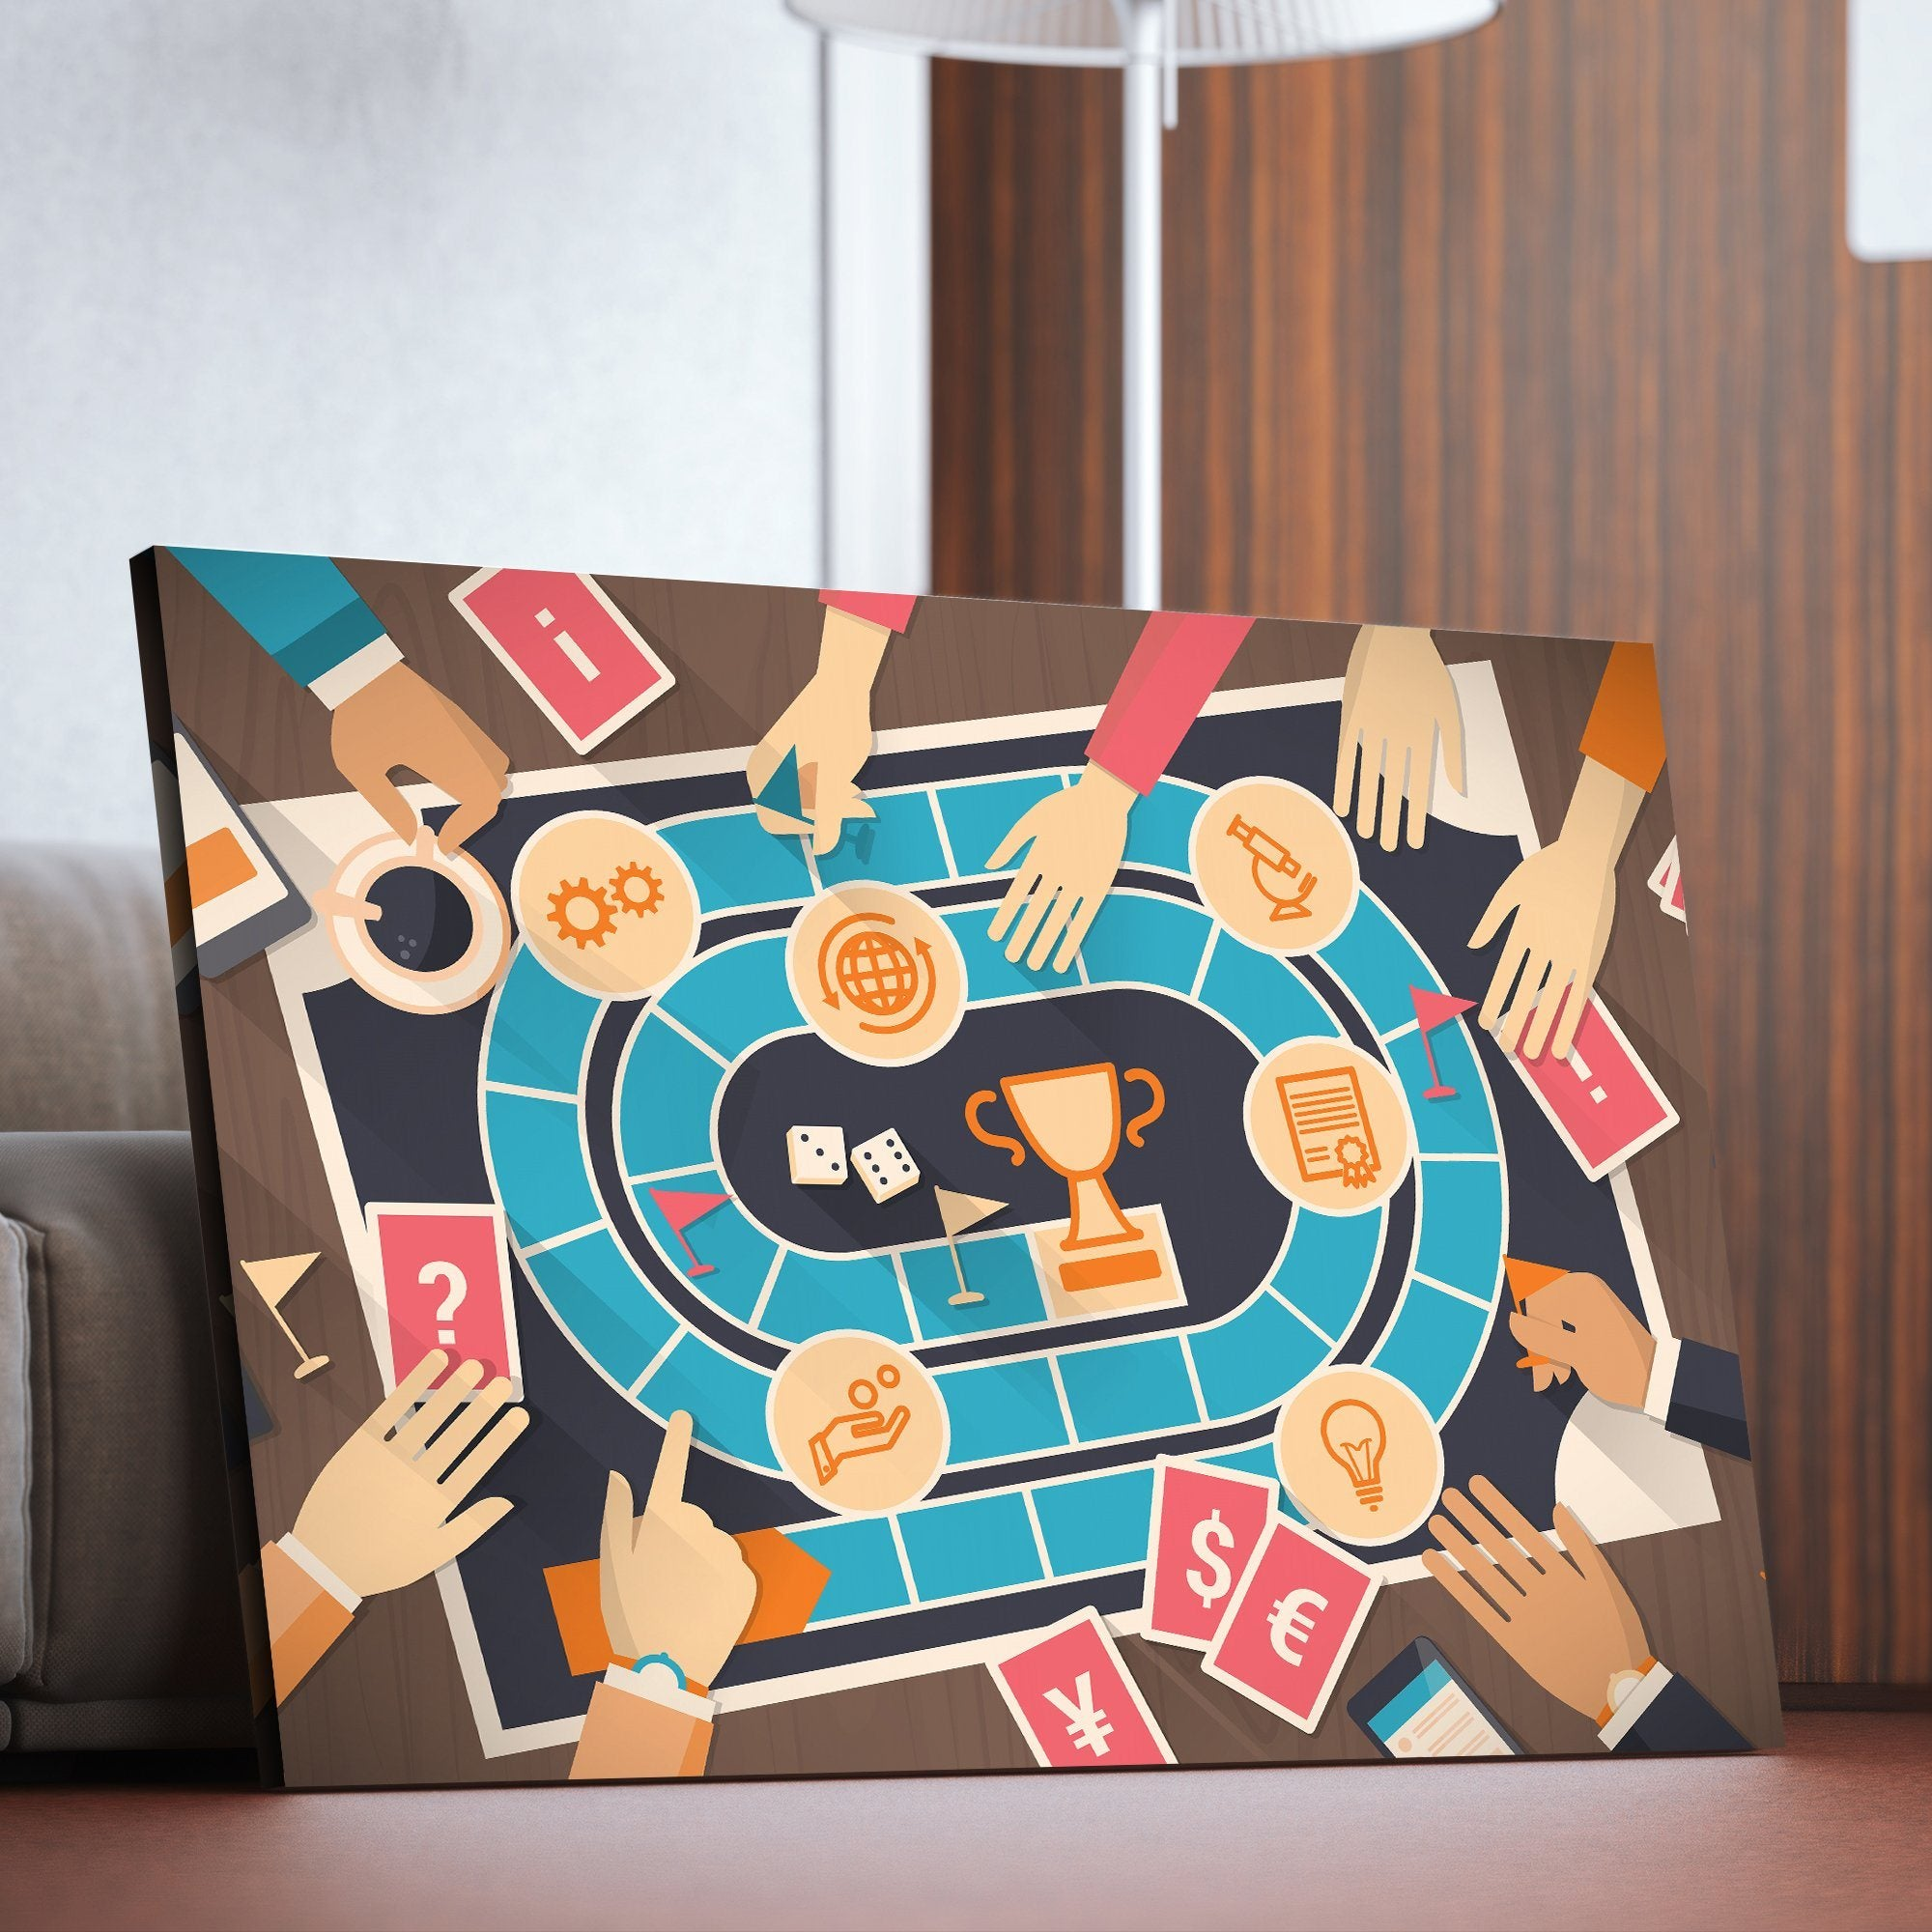 Board Games art